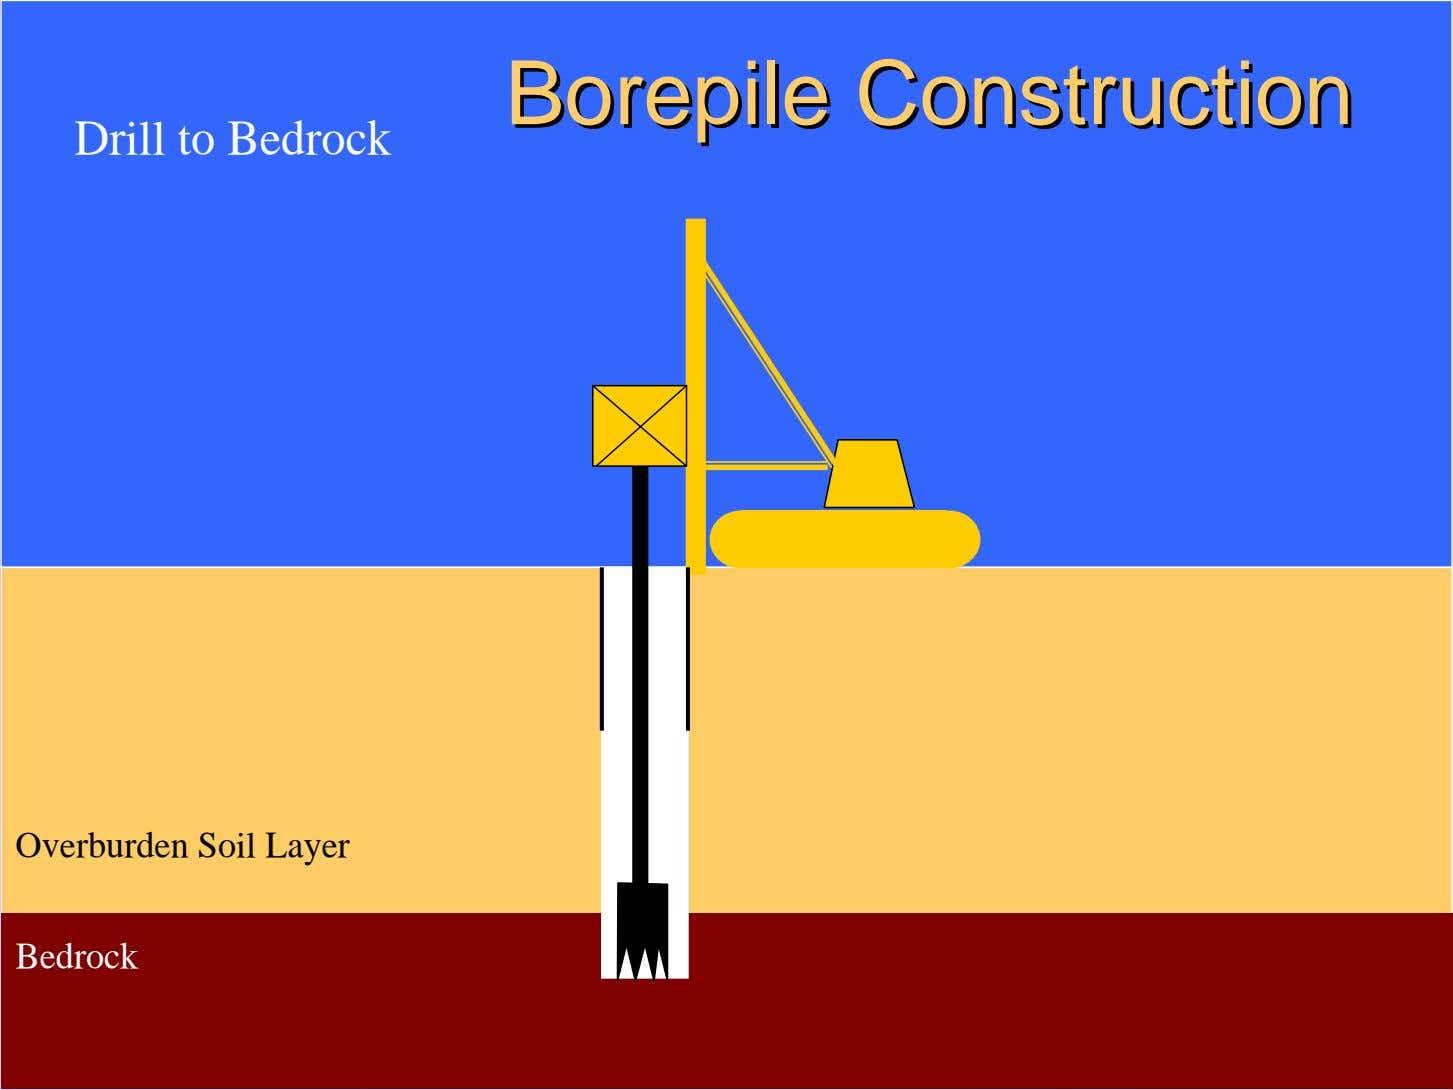 BorepileBorepile ConstructionConstruction Drill to Bedrock Overburden Soil Layer Bedrock